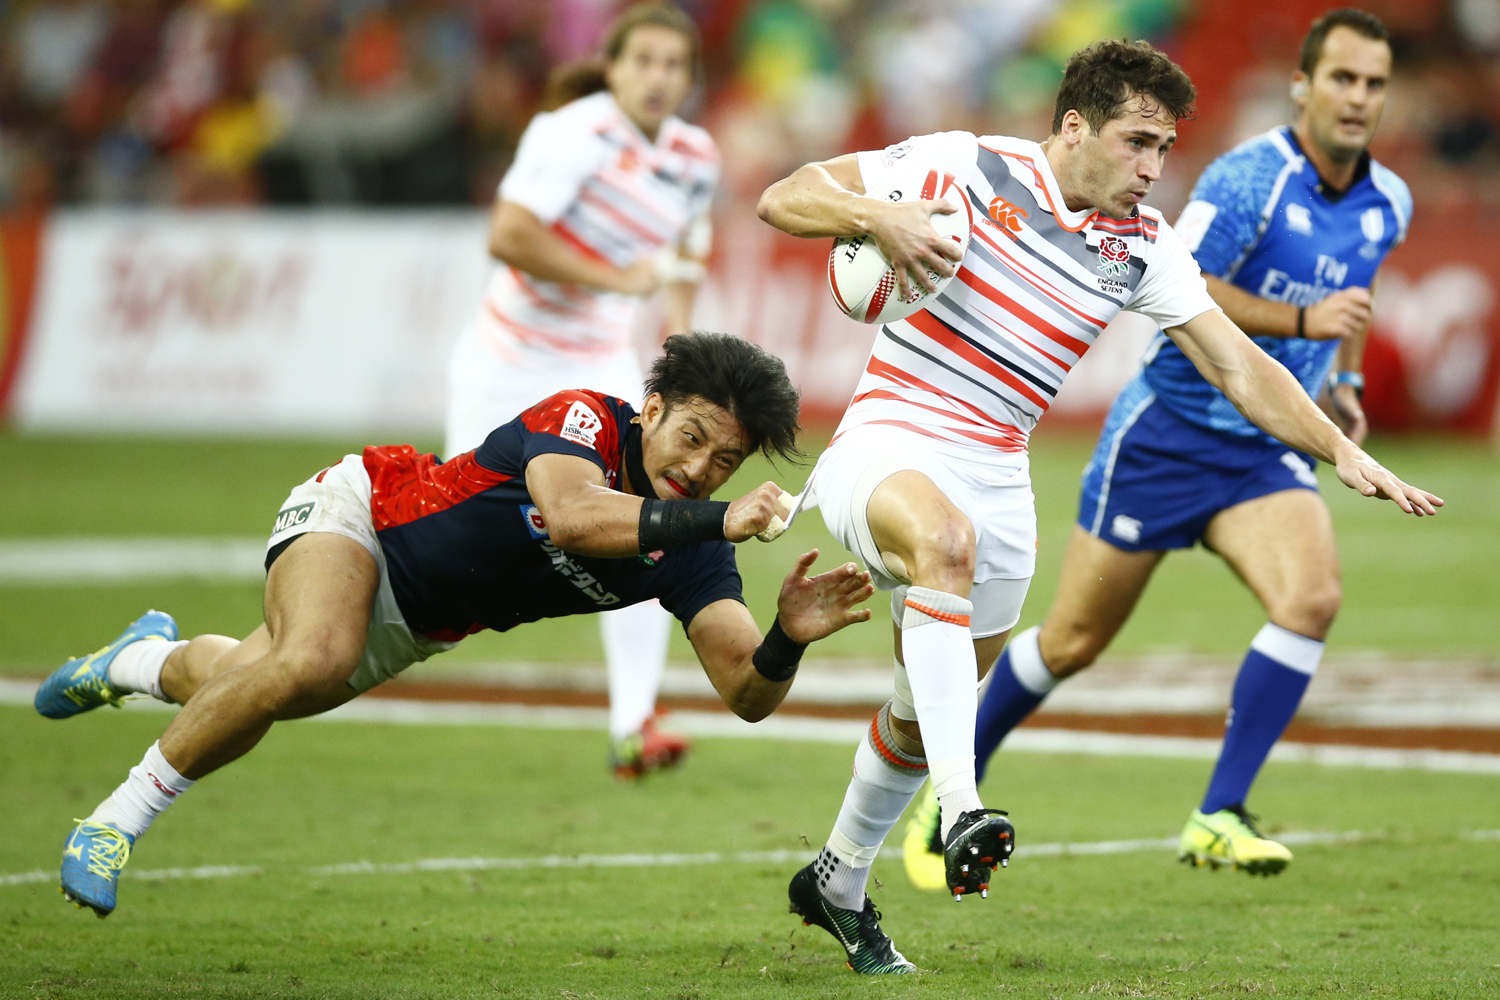 Rugby Union - Singapore Sevens - National Stadium, Singapore, 15/04/17 - England's Oliver Lindsay-Hague is tackled by Japan's Dai Ozawa. REUTERS/Yong Teck Lim